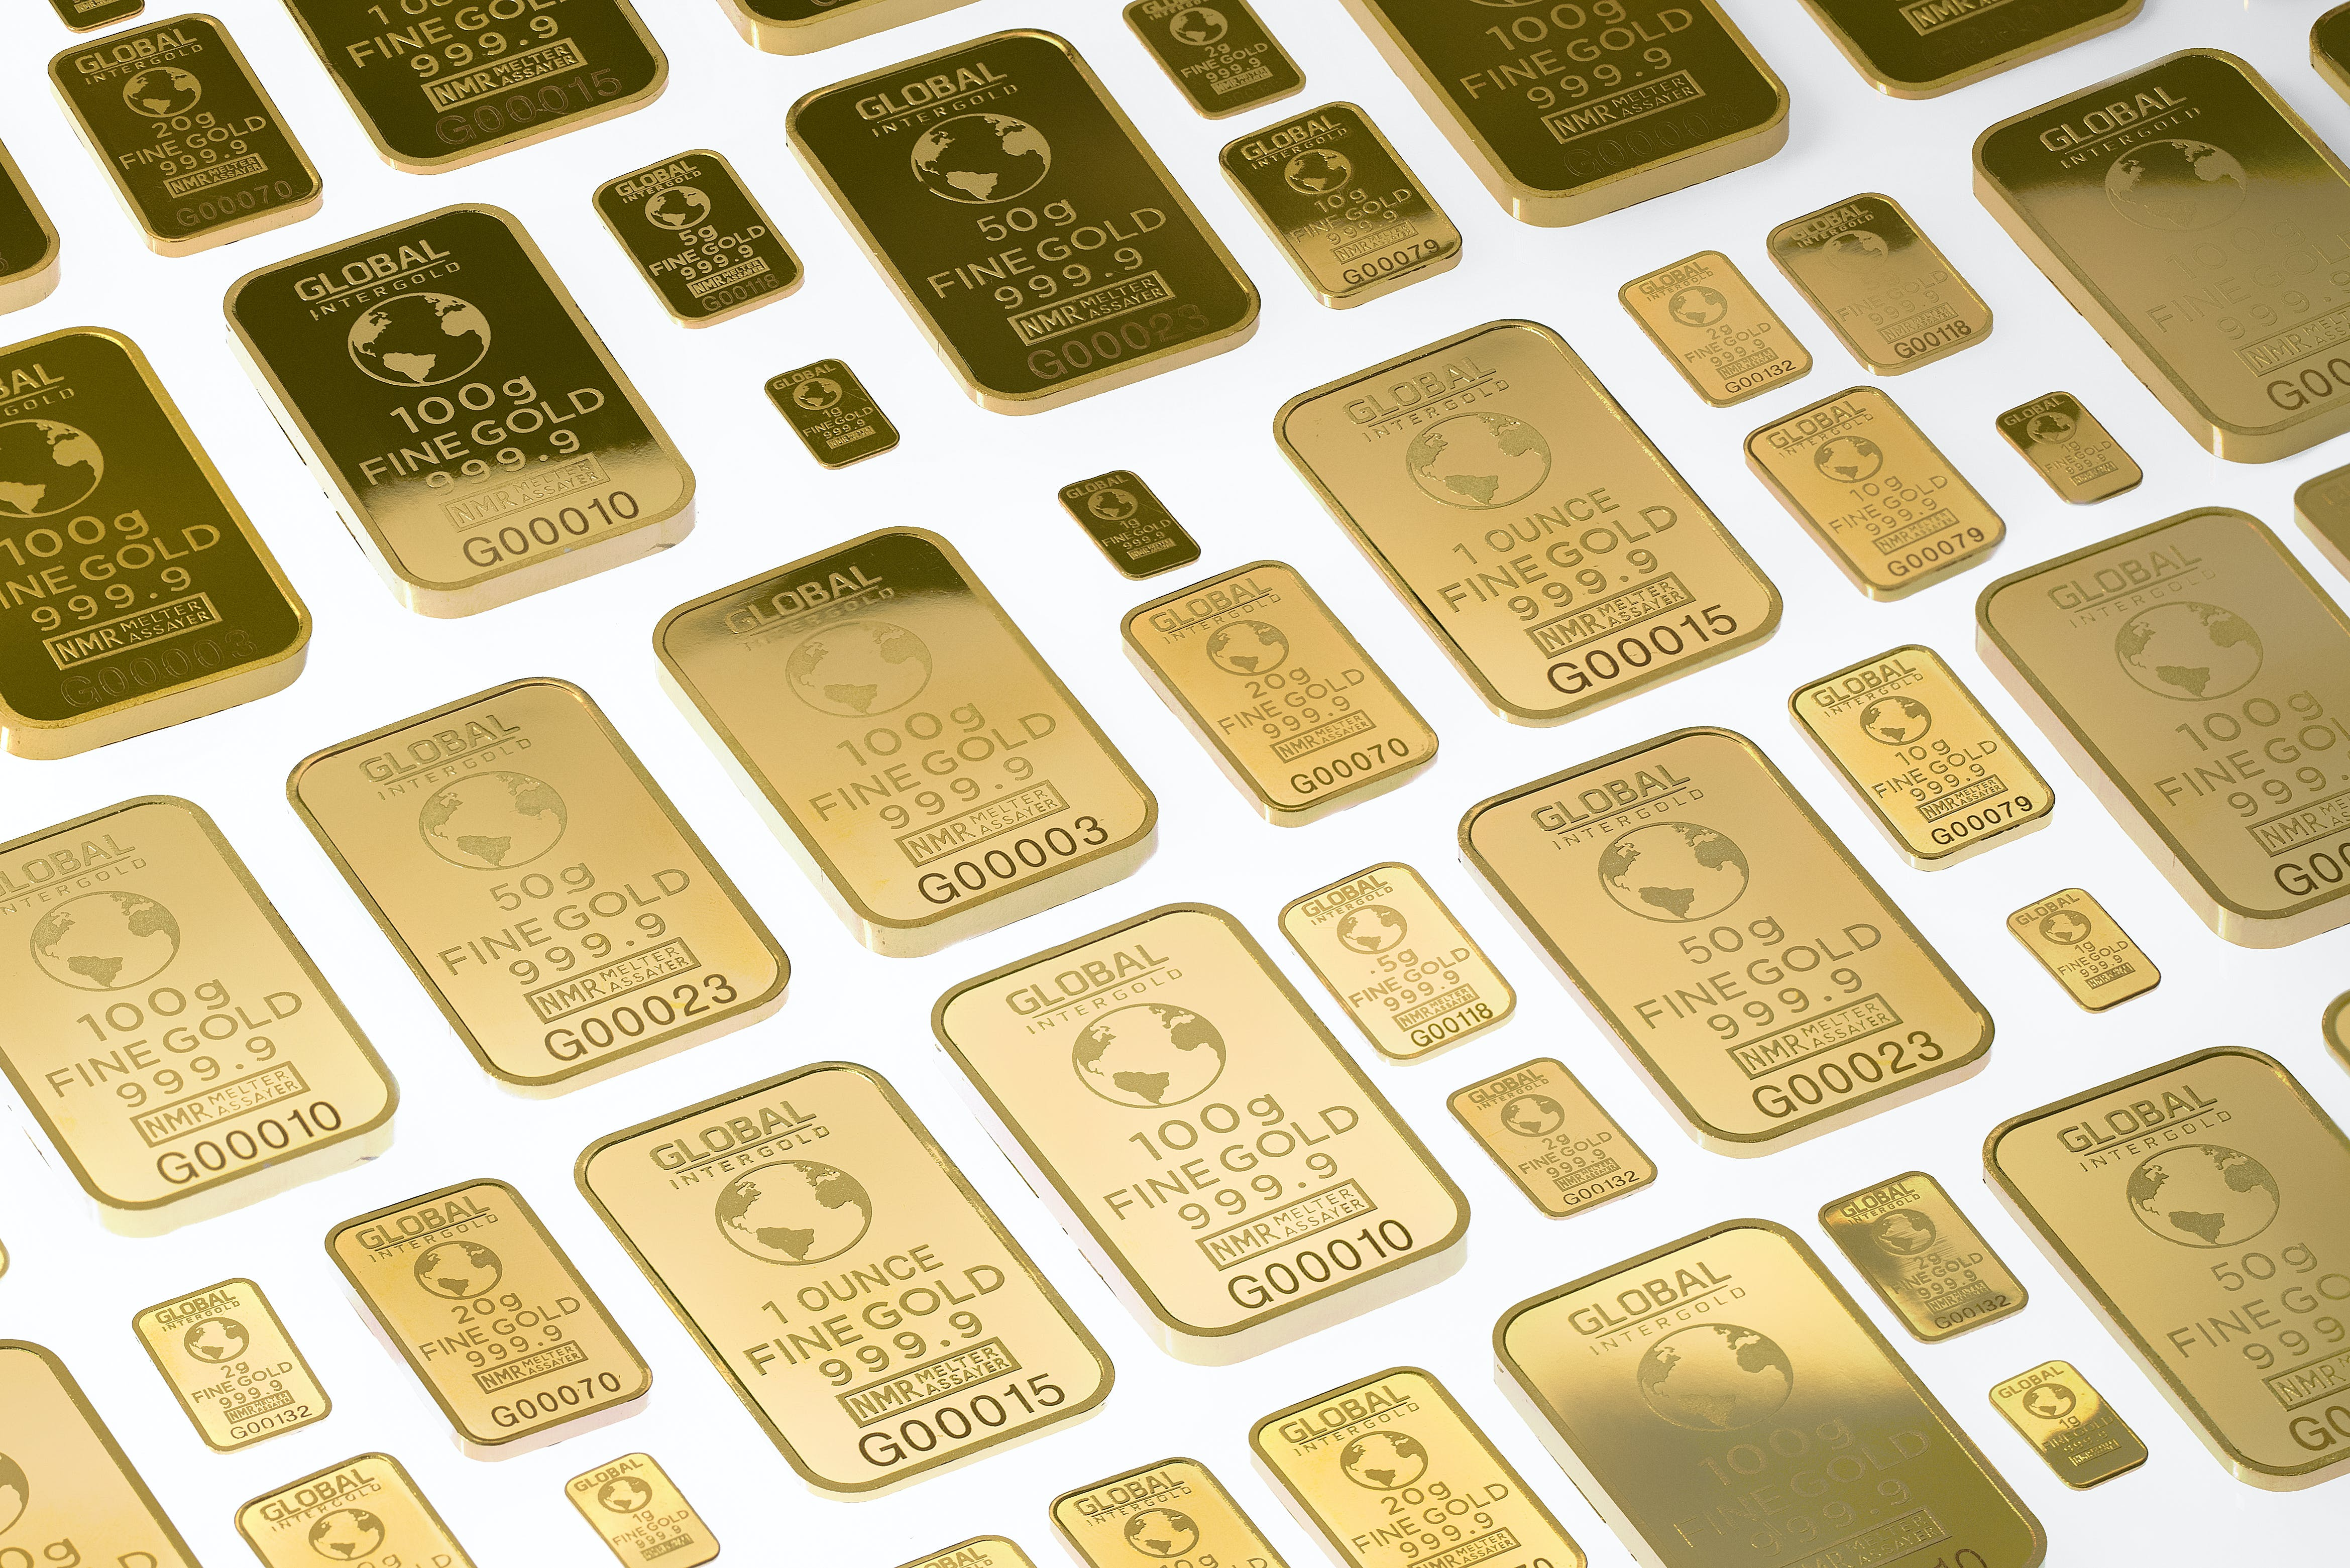 Free stock photo of global intergold, gold, gold bars, gold is money